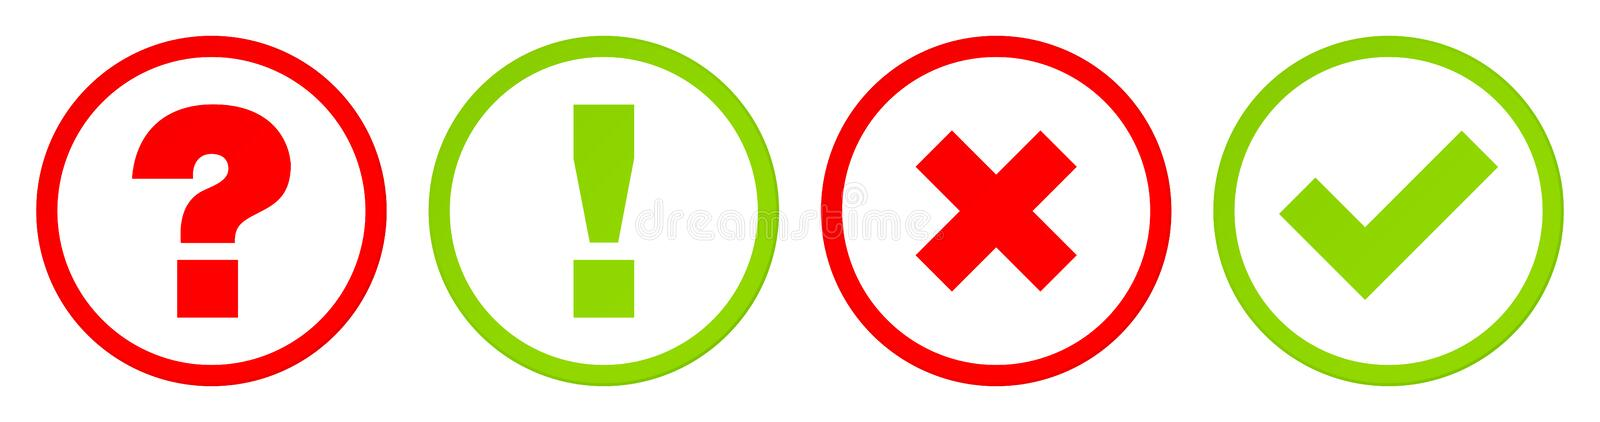 Buttons Question Answer And Checkmarks Set Contour Red Green vector illustration